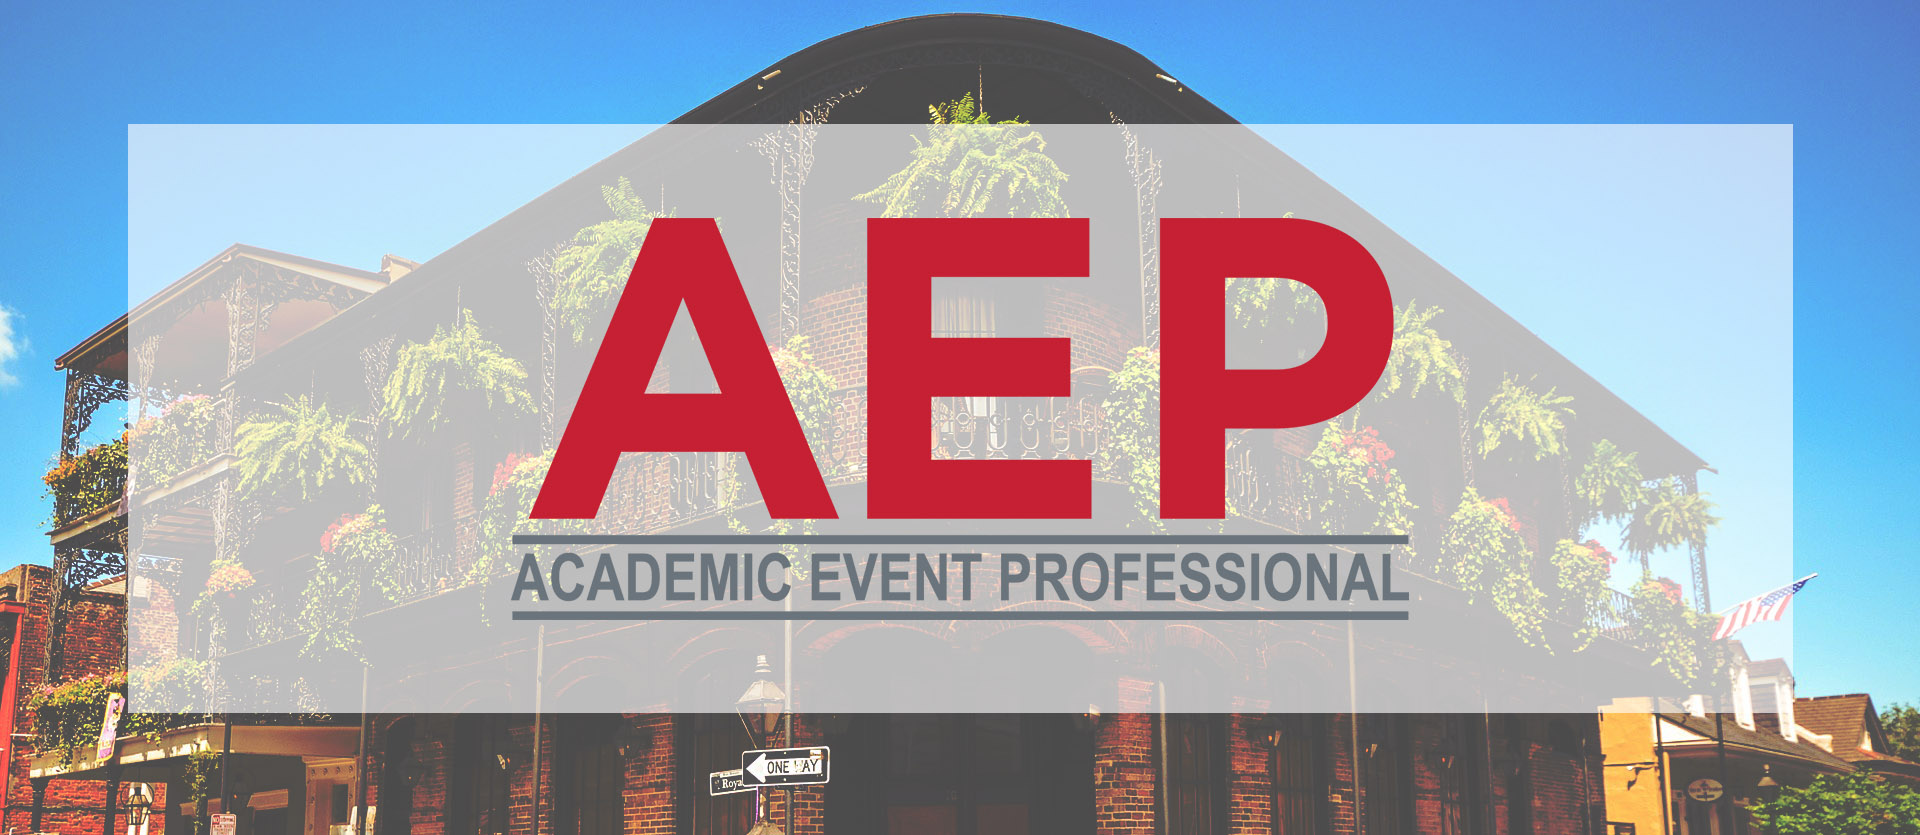 Academic Event Professional 2018